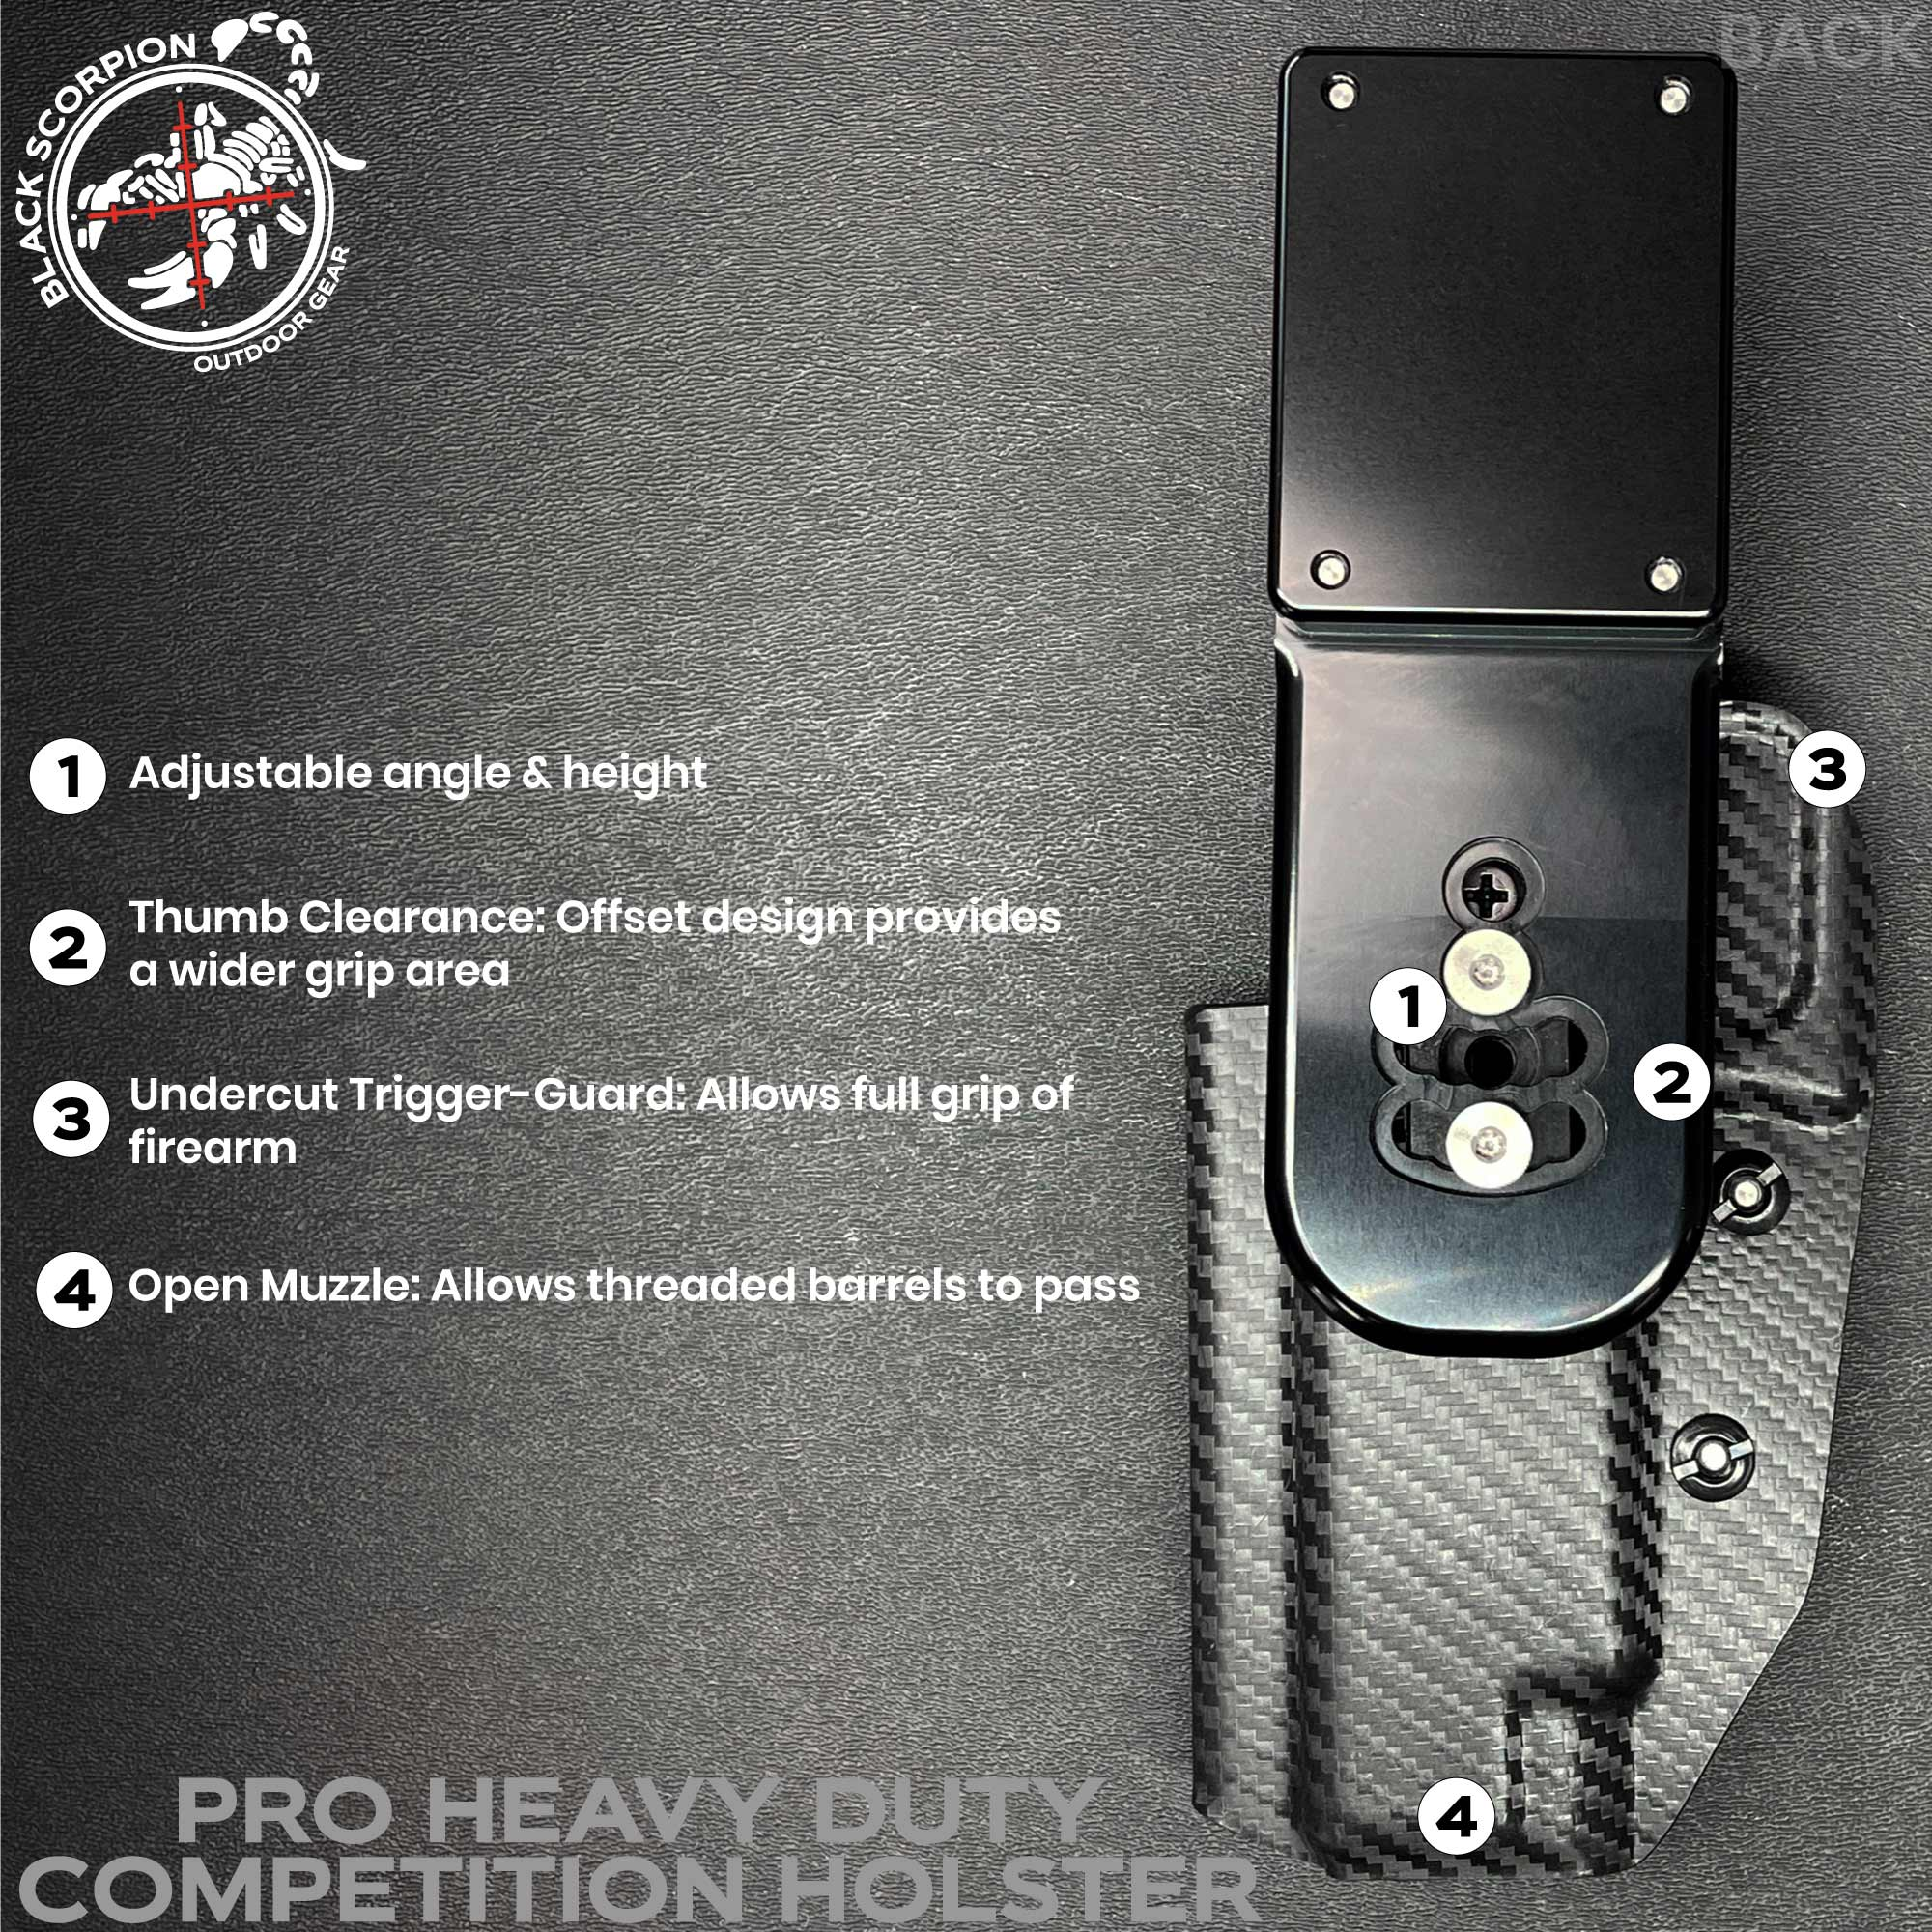 Pro-HD-Competition-Holster-Diagram-2